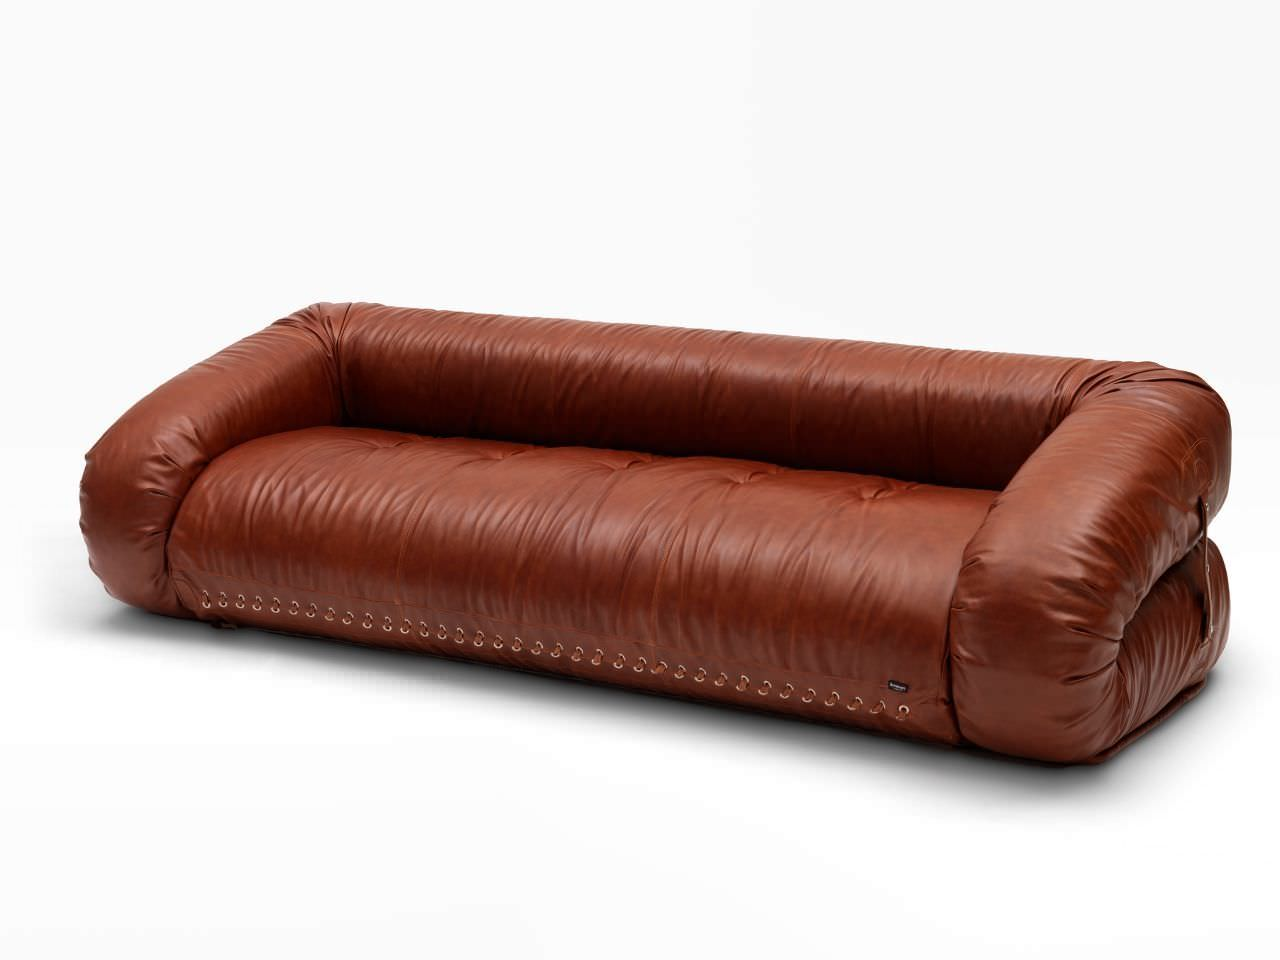 Sofa bed / contemporary / leather / 3-seater - ANFIBIO by Alessandro ...